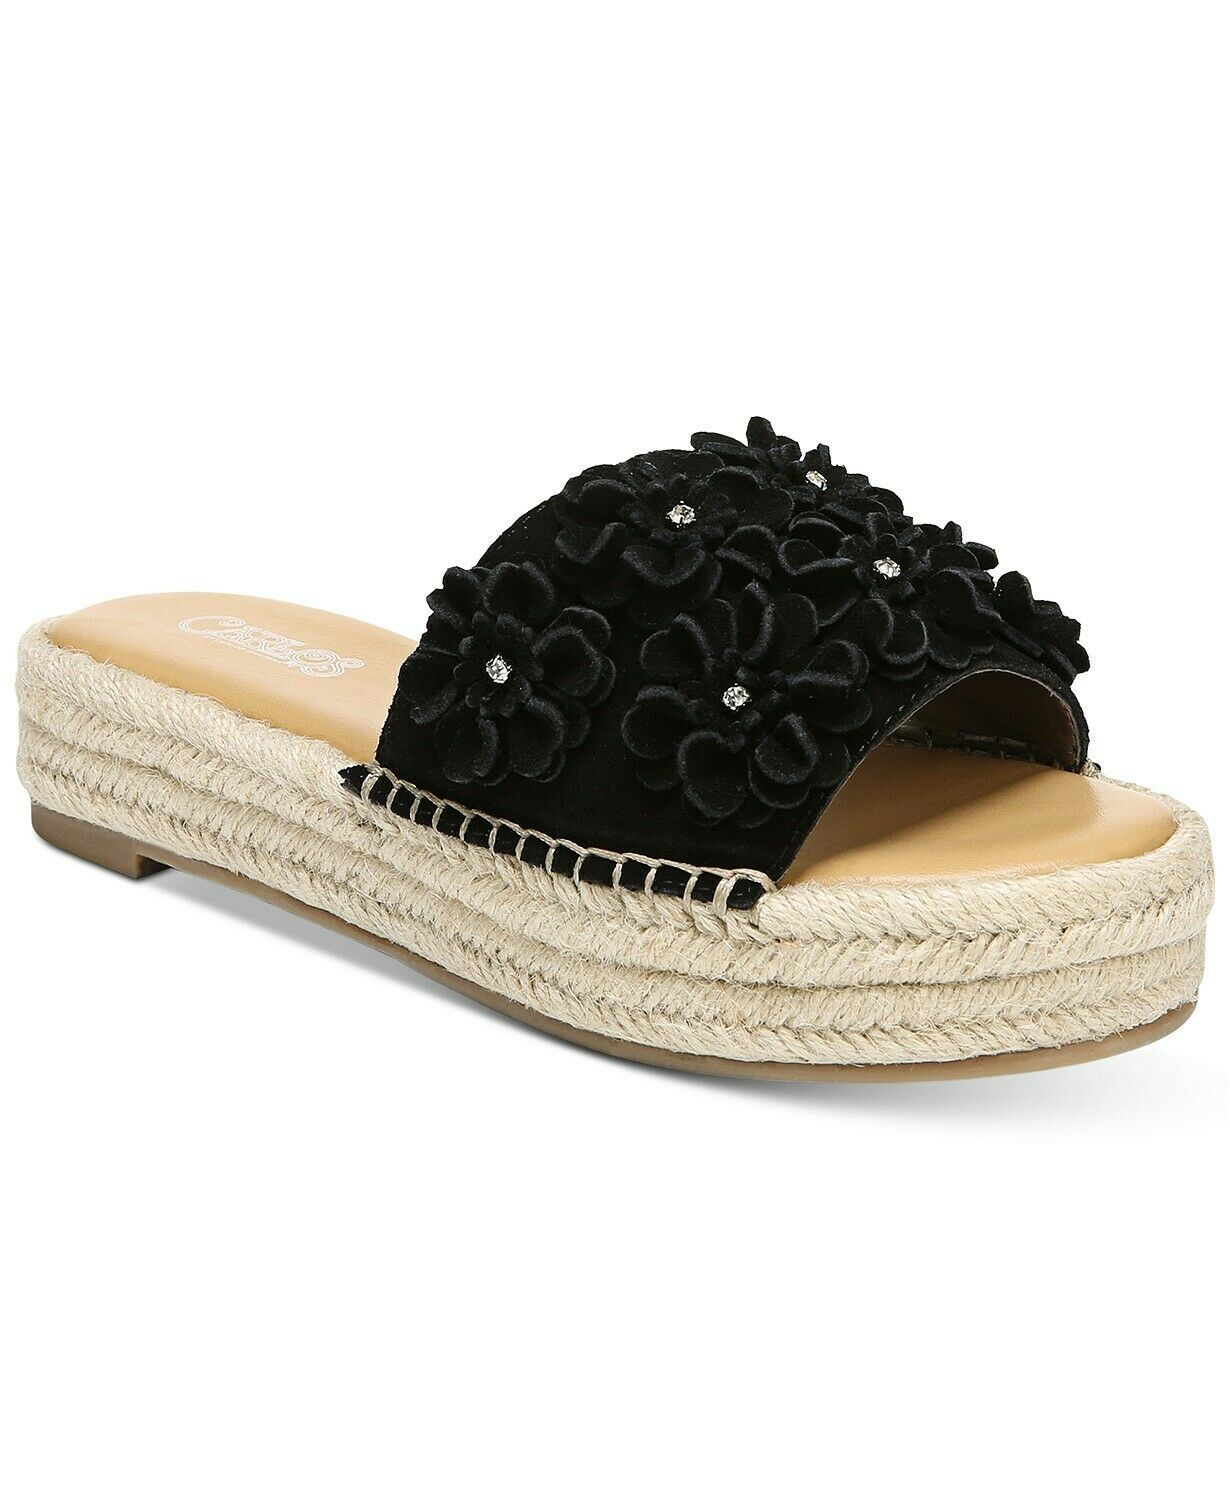 Carlos by Carlos Santana Chandler Sandals Black, Size 9 M